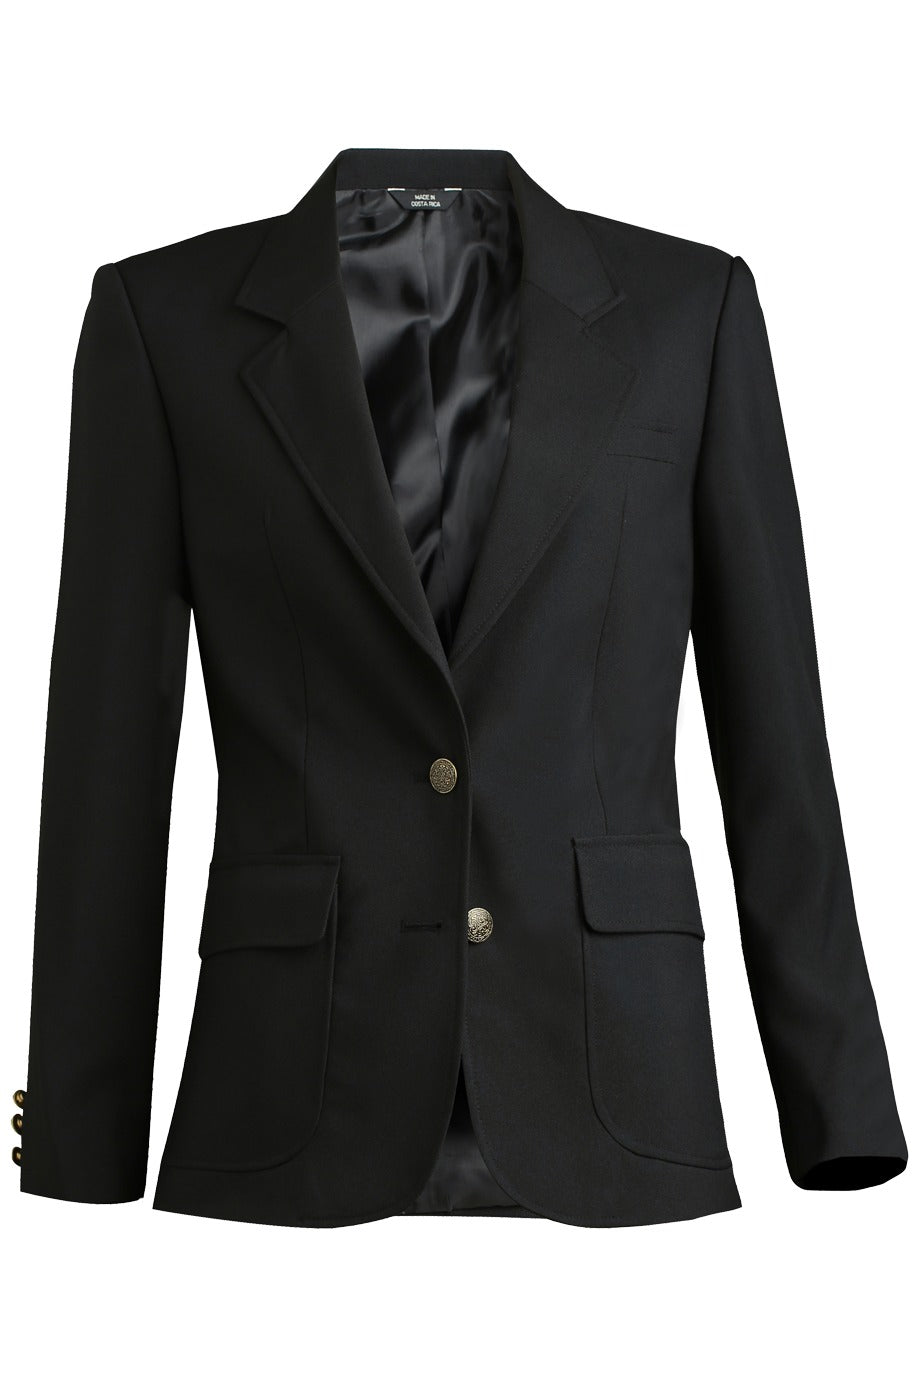 Women's Black Value Blazer